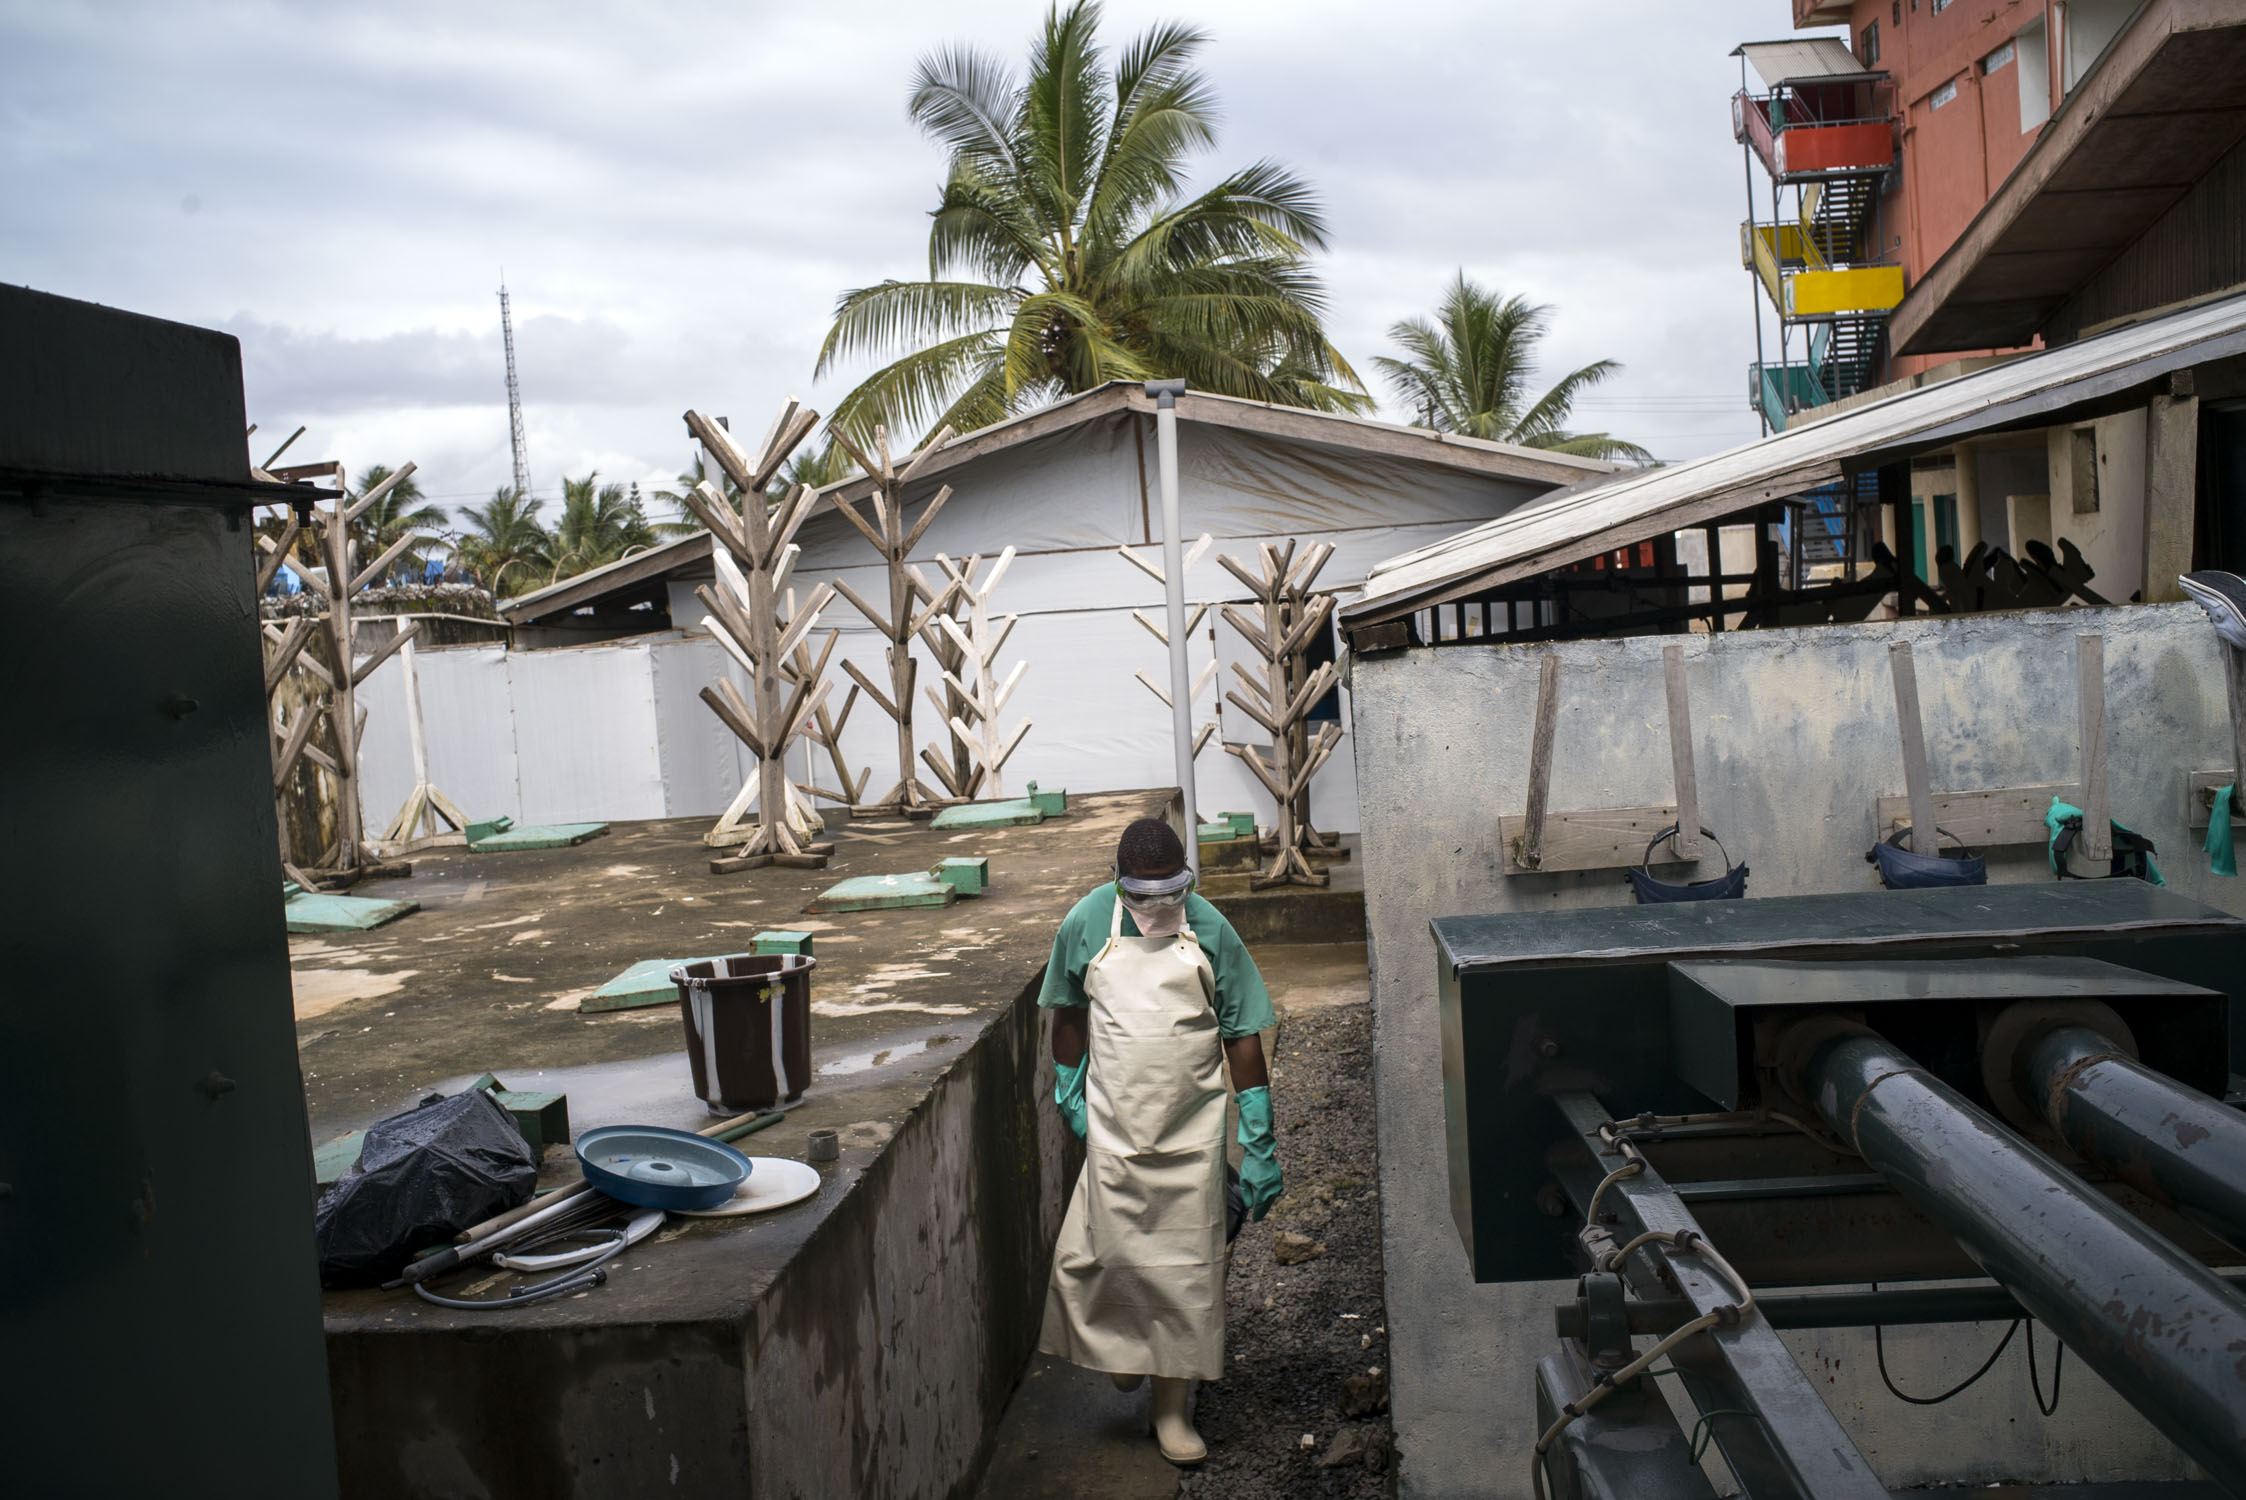 A sanitation worker walks though the back courtyard of an MSF hospital in Monrovia, Liberia. In the aftermath of the the ebola epidemic of 2014/15 that left an estimated 4800 dead in Liberia, the hospital adheres to especially strict routine sanitation measures. Monrovia, Liberia. Sept. 28, 2016